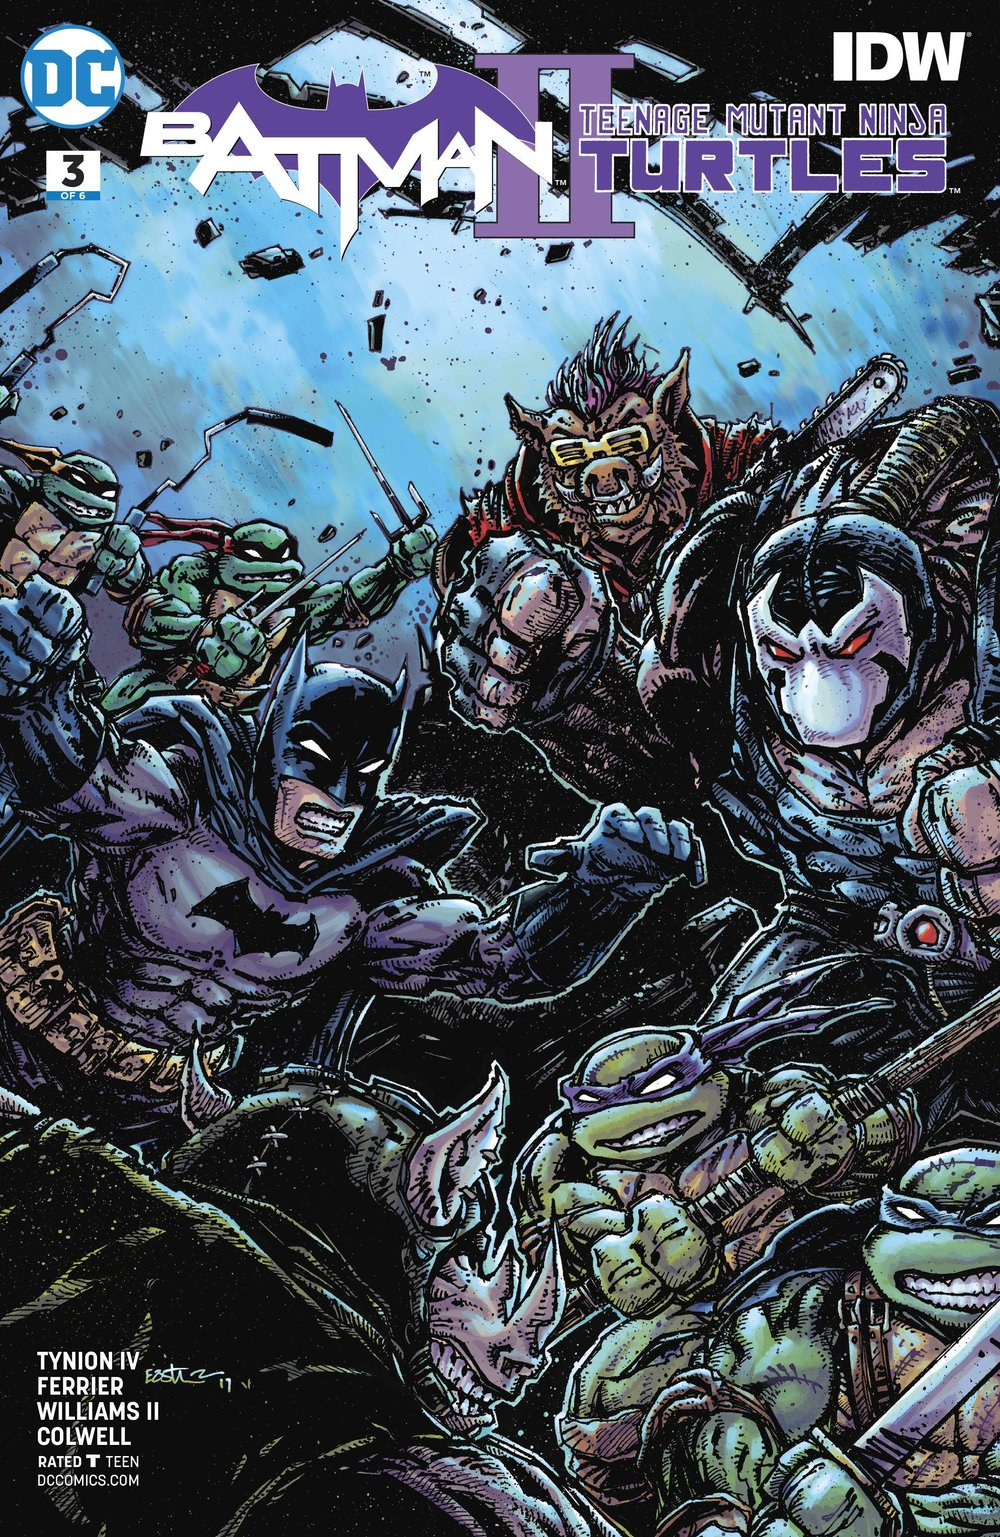 BATMAN TEENAGE MUTANT NINJA TURTLES II 3 of 6 VAR ED (1).jpg